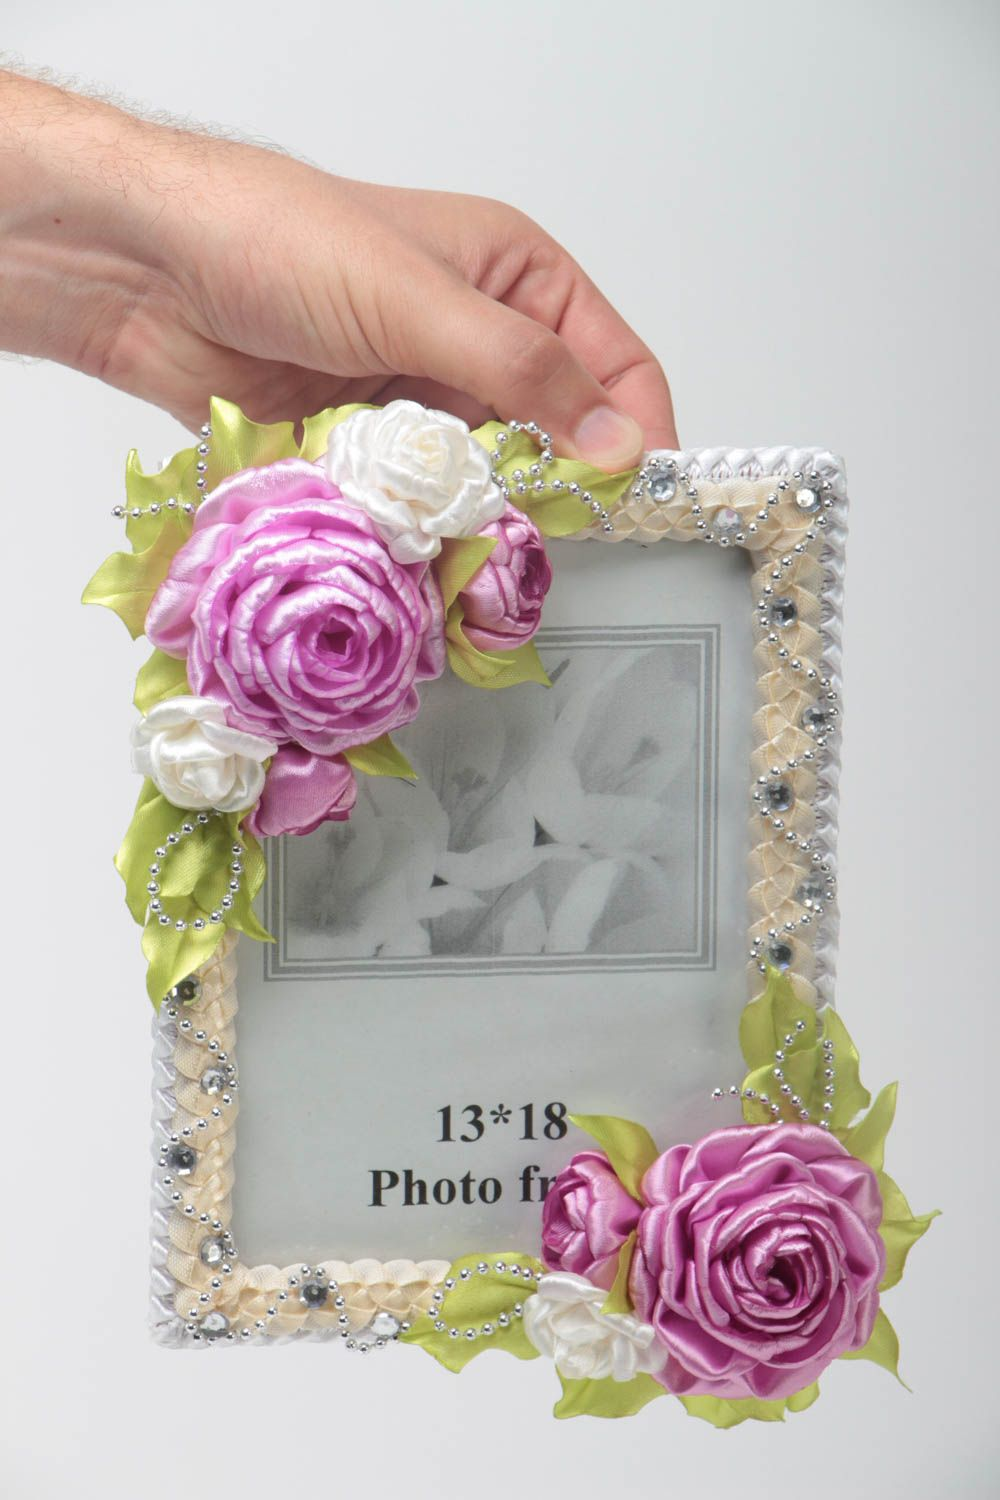 Handmade wooden photo frame with textile flowers interior decorating gift ideas photo 5